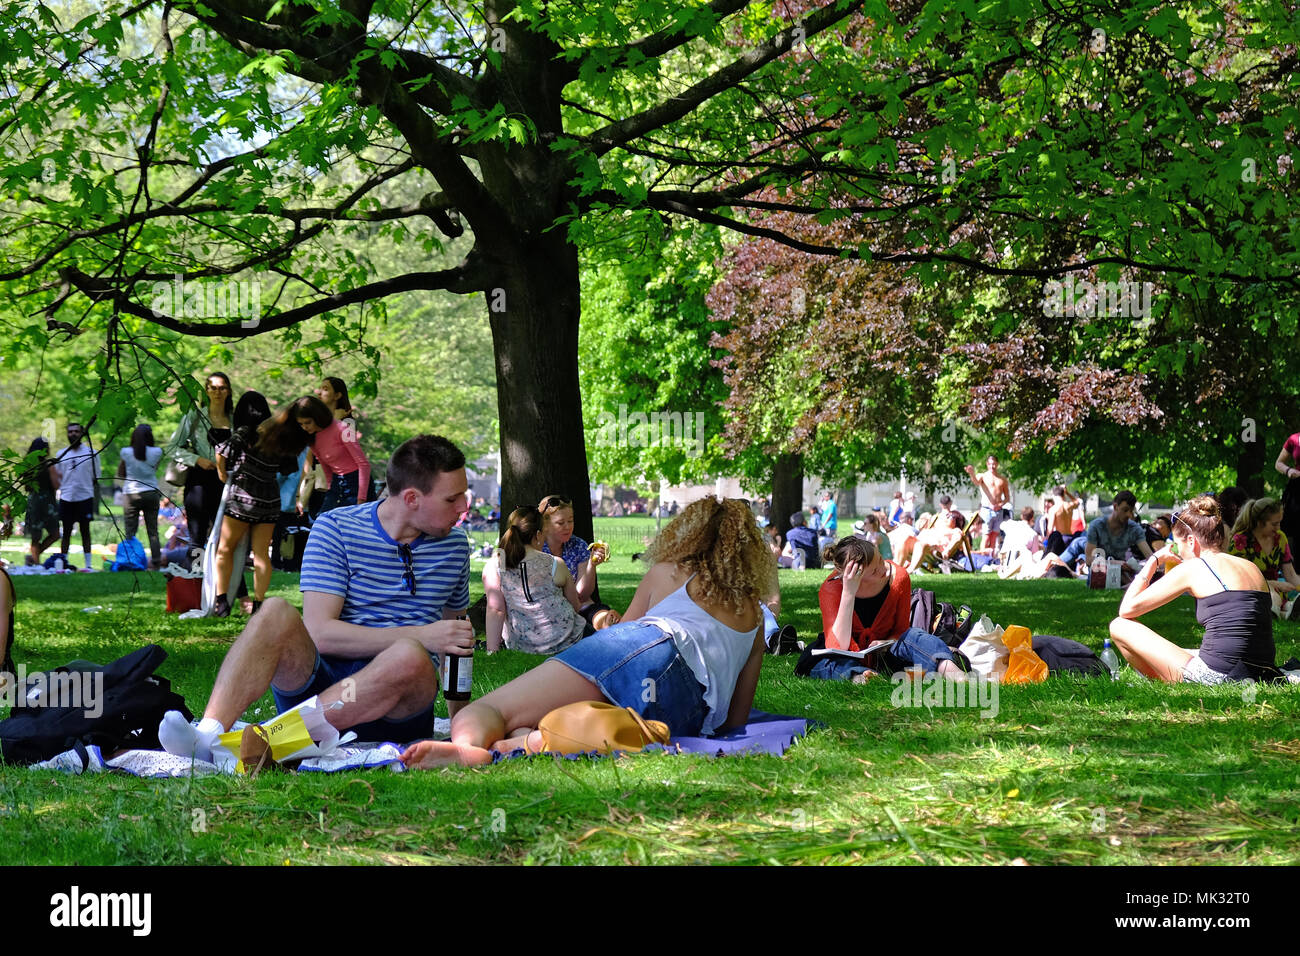 St. James Park, London, England, 6th May, 2018. London Weather. St. James Park, London UK, is full of people enjoying the warmth and sun during this Bank Holiday Weekend, with temperatures reaching the high 20's. Credit: Judi Saunders/Alamy Live News - Stock Image